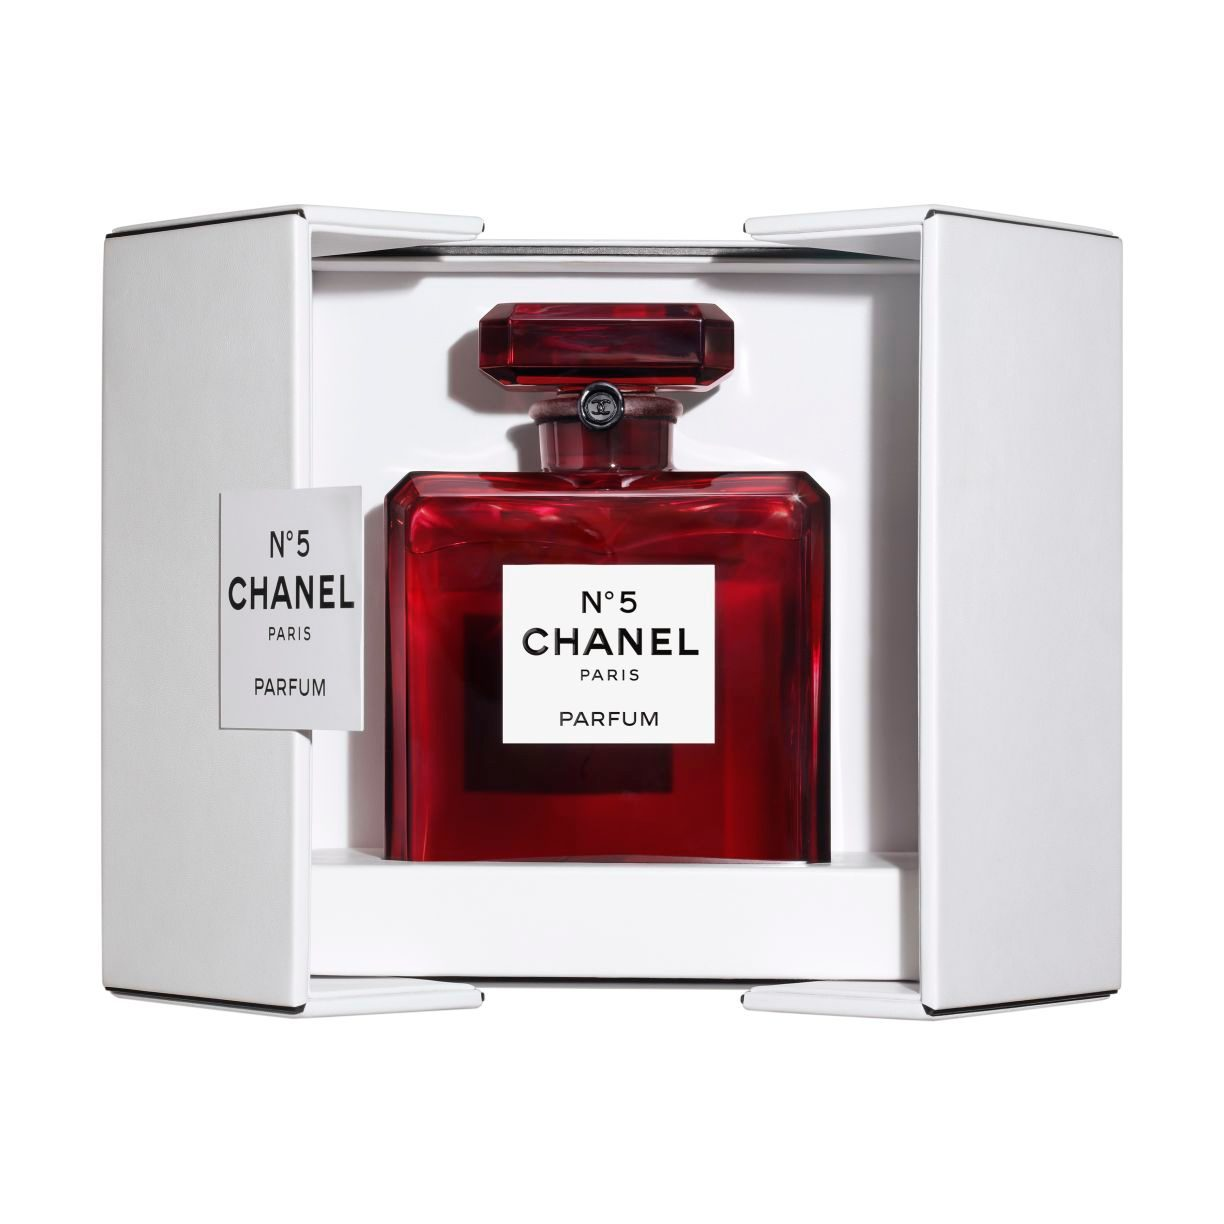 N°5 GRAND EXTRAIT N°5 GRAND EXTRAIT BACCARAT LIMITED EDITION